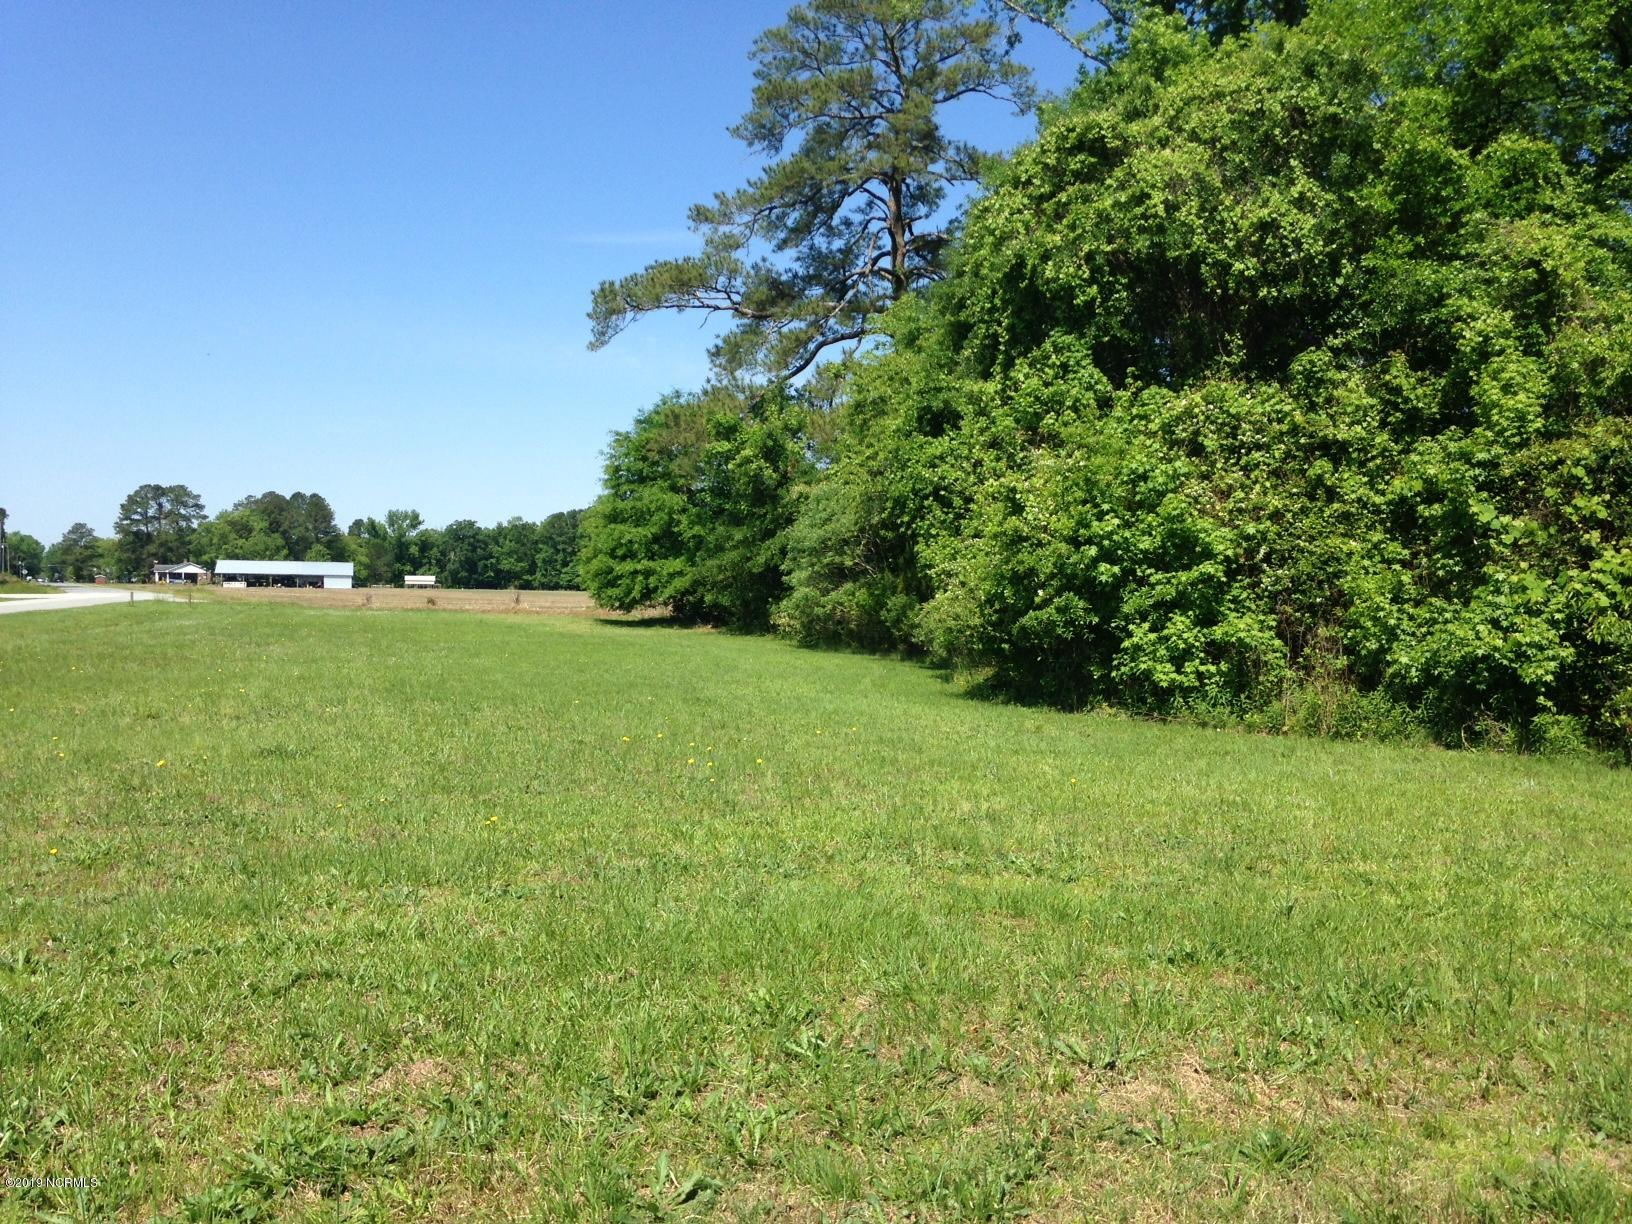 Lot 13 Sabre Pointe Drive, Bath, North Carolina 27808, ,Residential land,For sale,Sabre Pointe,100192543